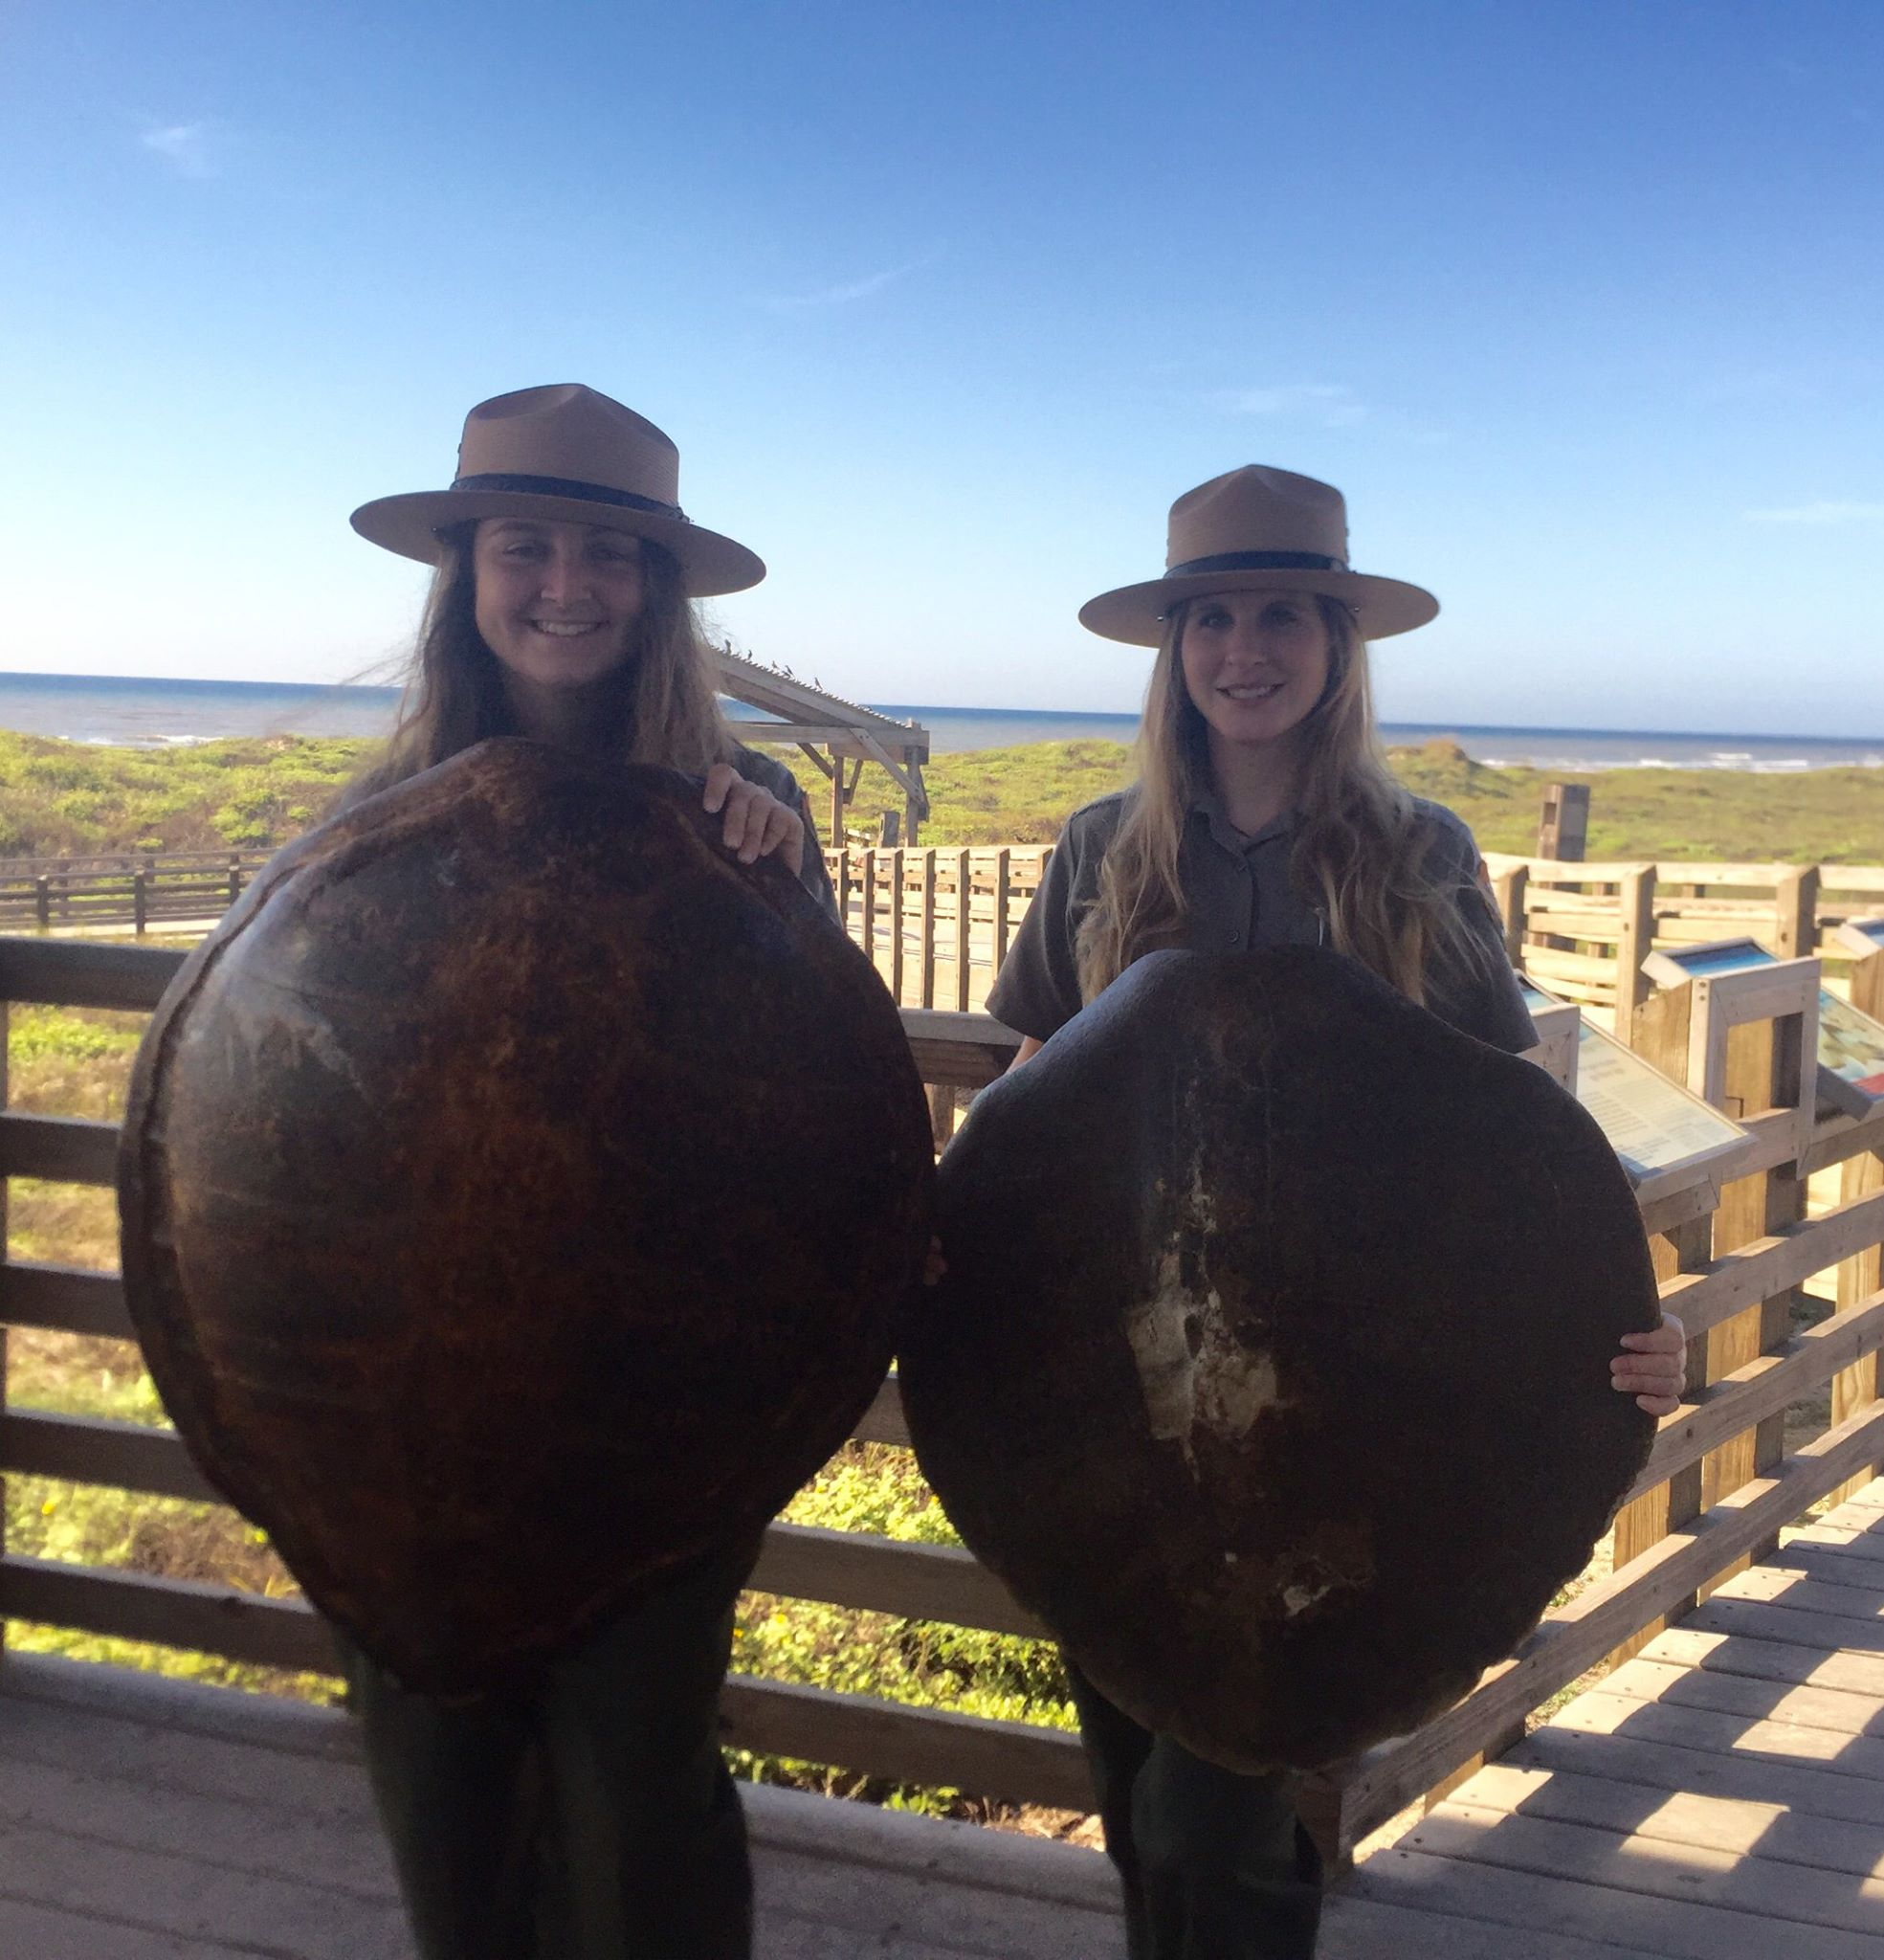 Interpretive Park Rangers Rangers pose with green and Kemp's ridley sea turtle shells that are used in school programs